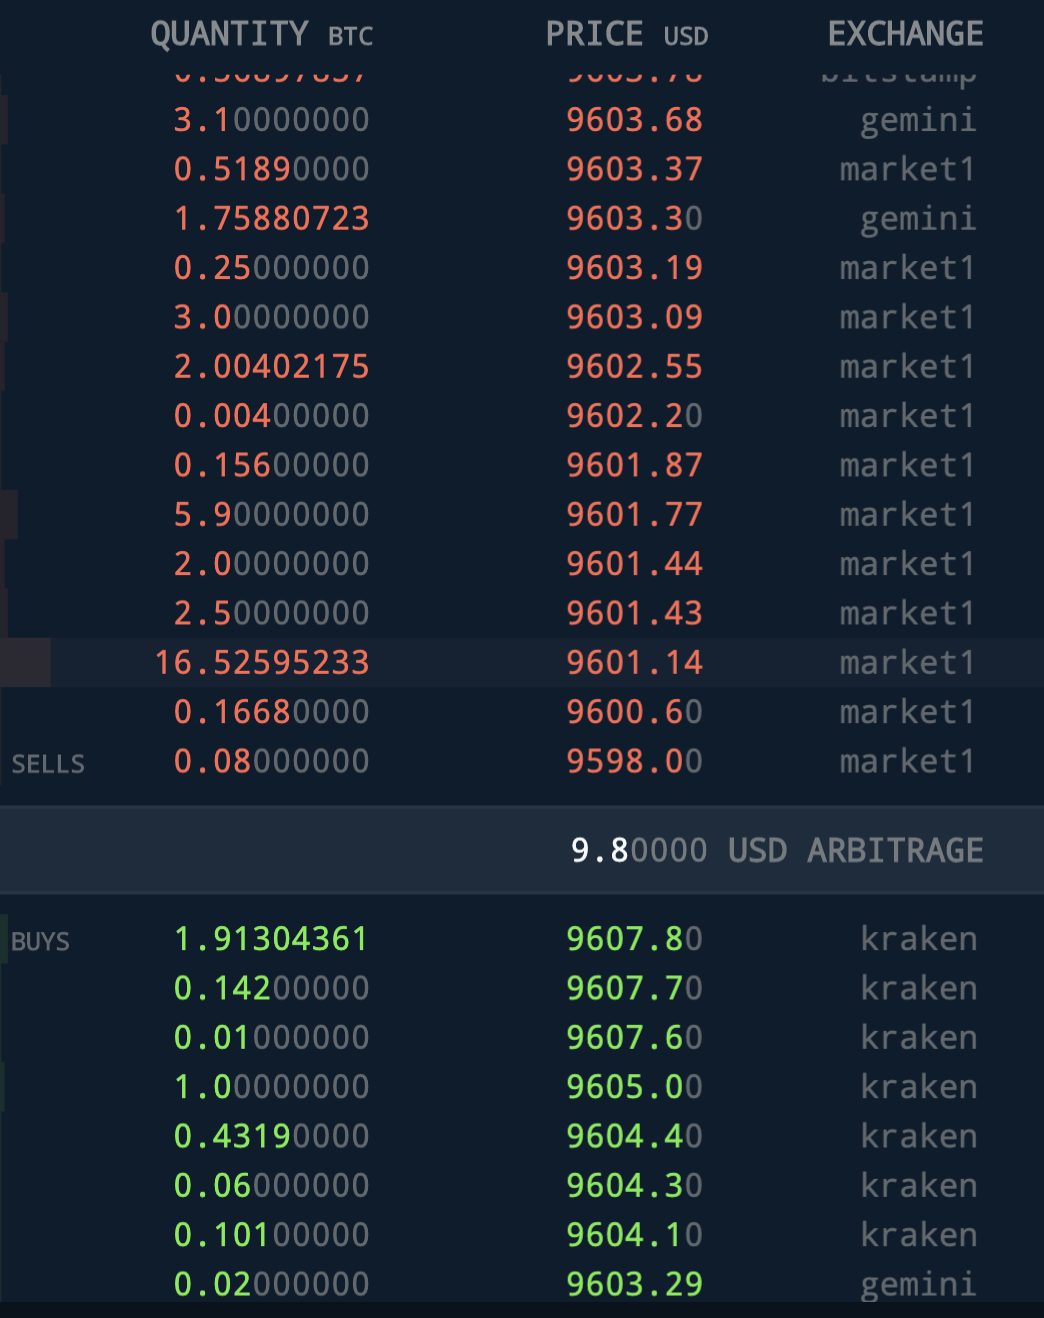 SFOX's order book loudly displays Bitcoin arbitrage opportunities and empowers traders to capture it using SFOX's smart-routing order types.